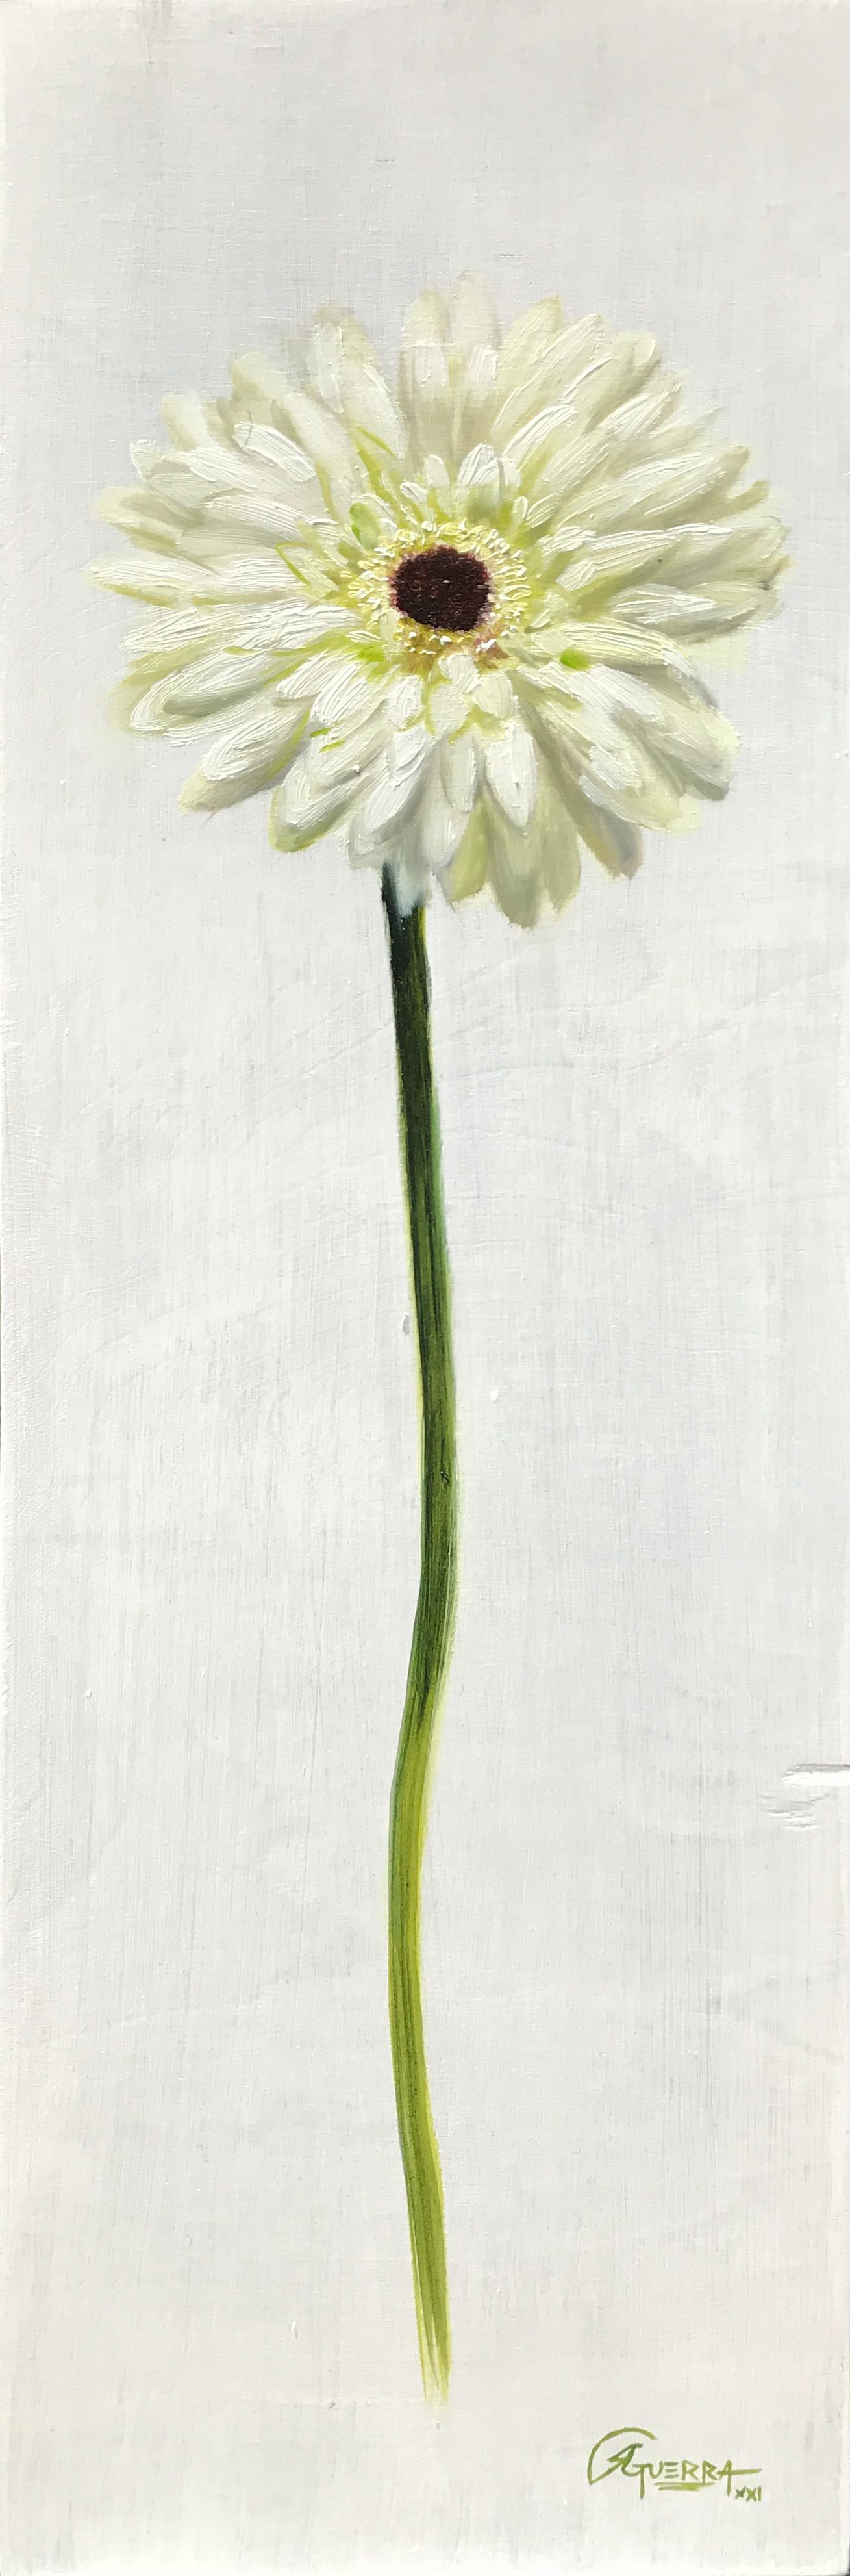 White Flower, Rafael Guerra Painting